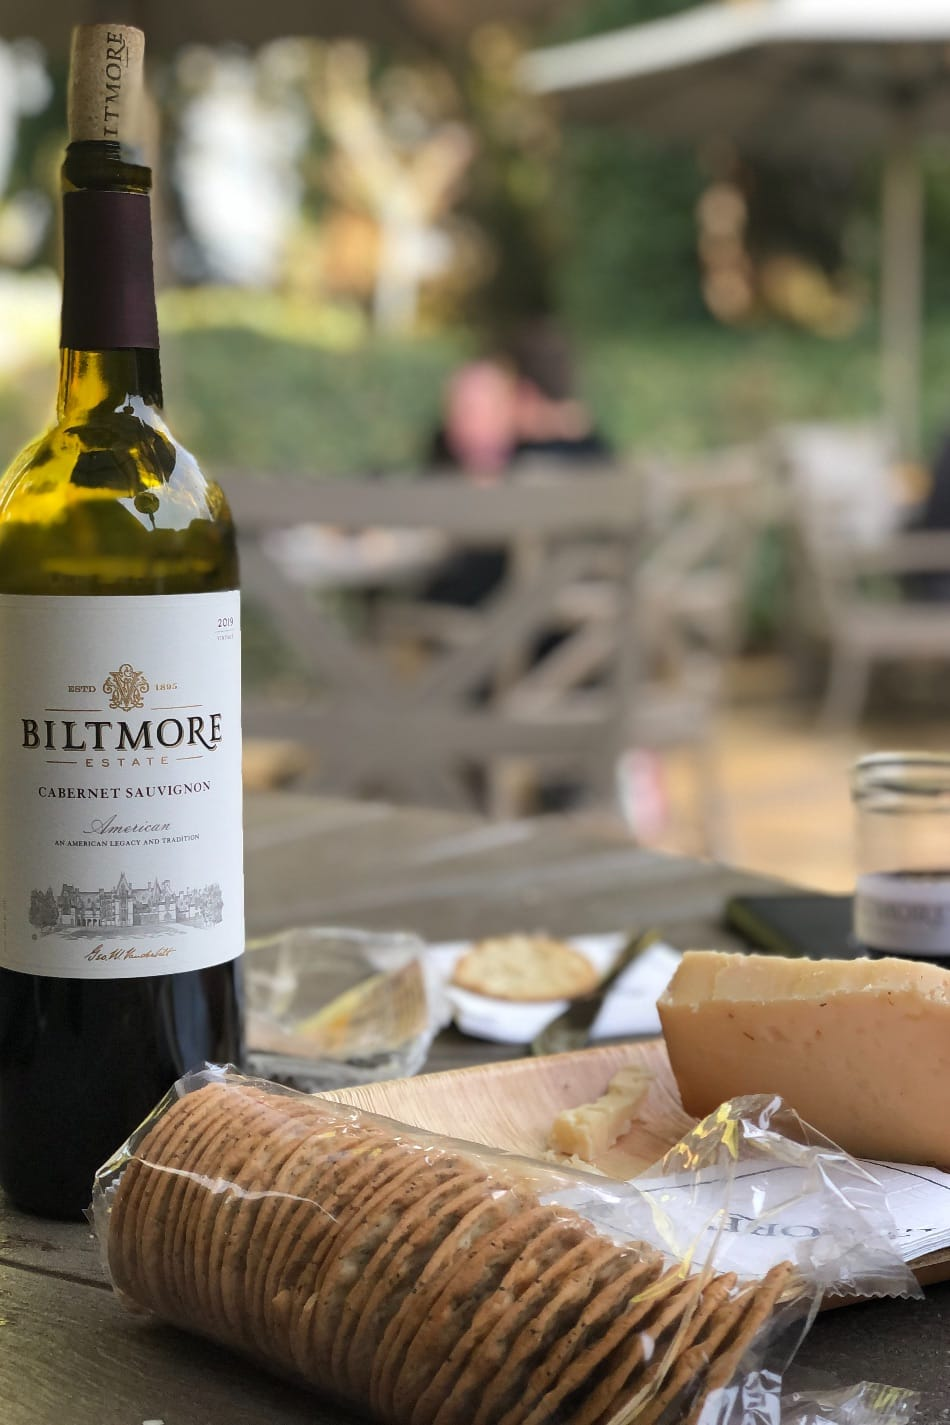 Biltmore wine, cheese, and crackers on table outside